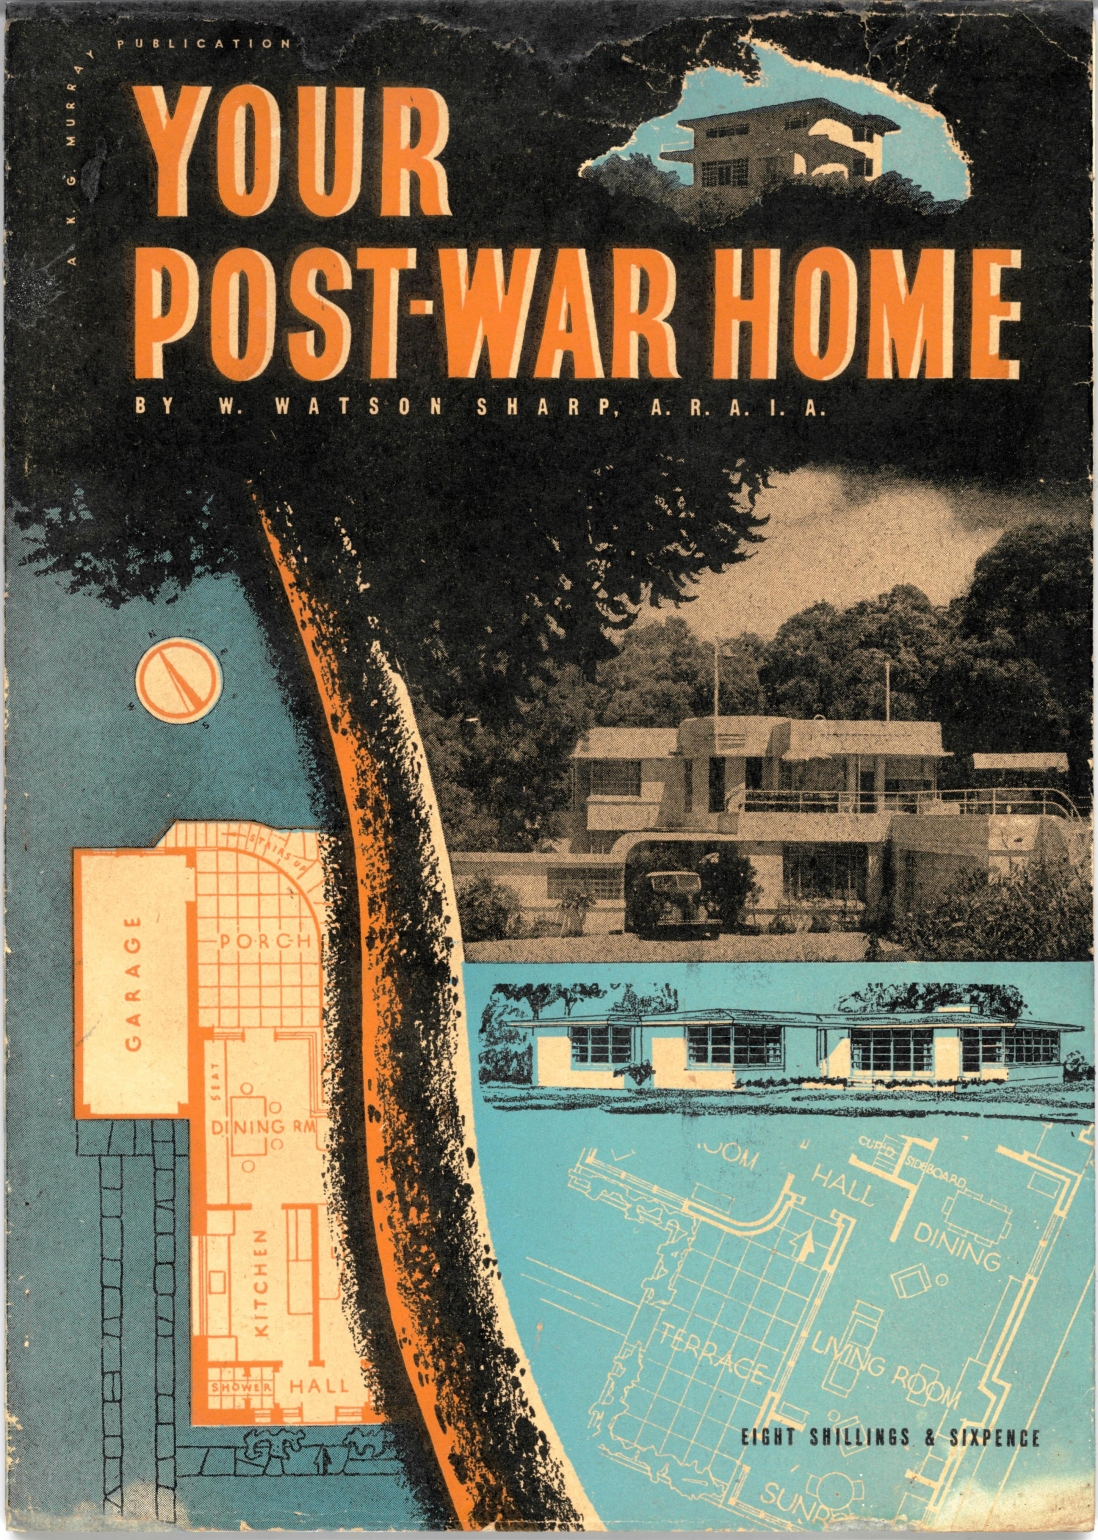 Your post-war home